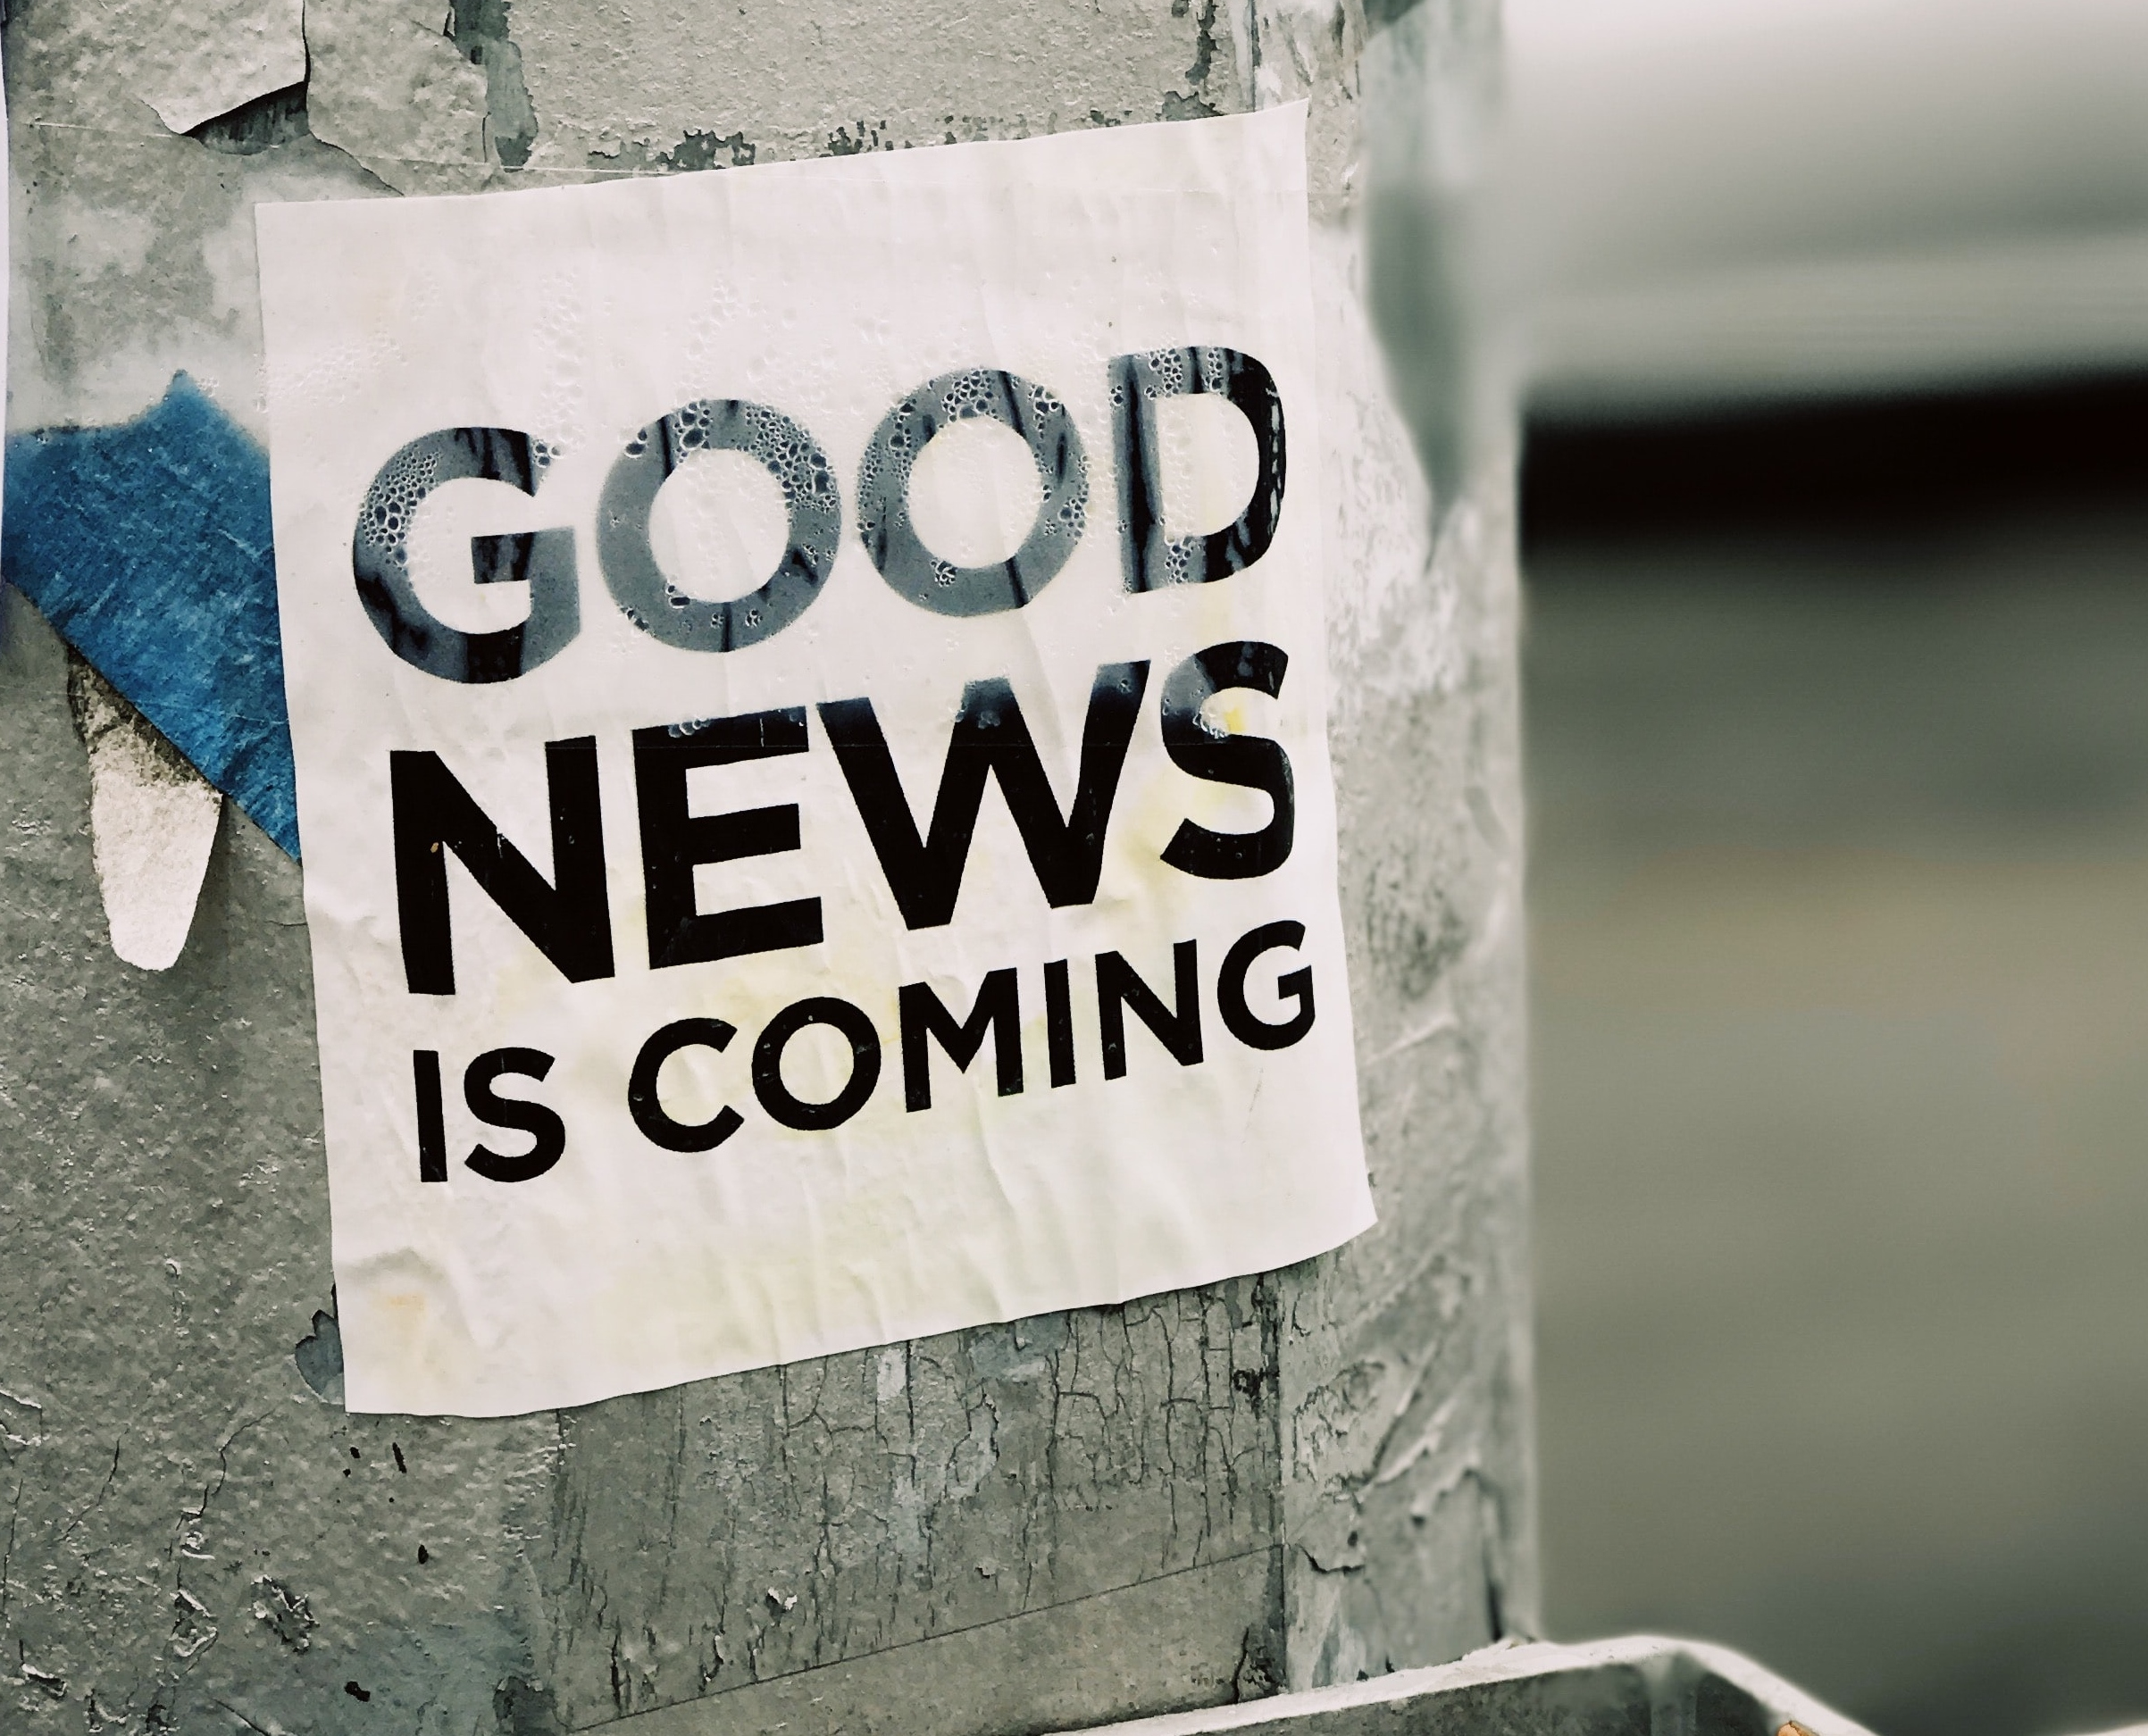 Good news is coming | Photo by Jon Tyson on Unsplash